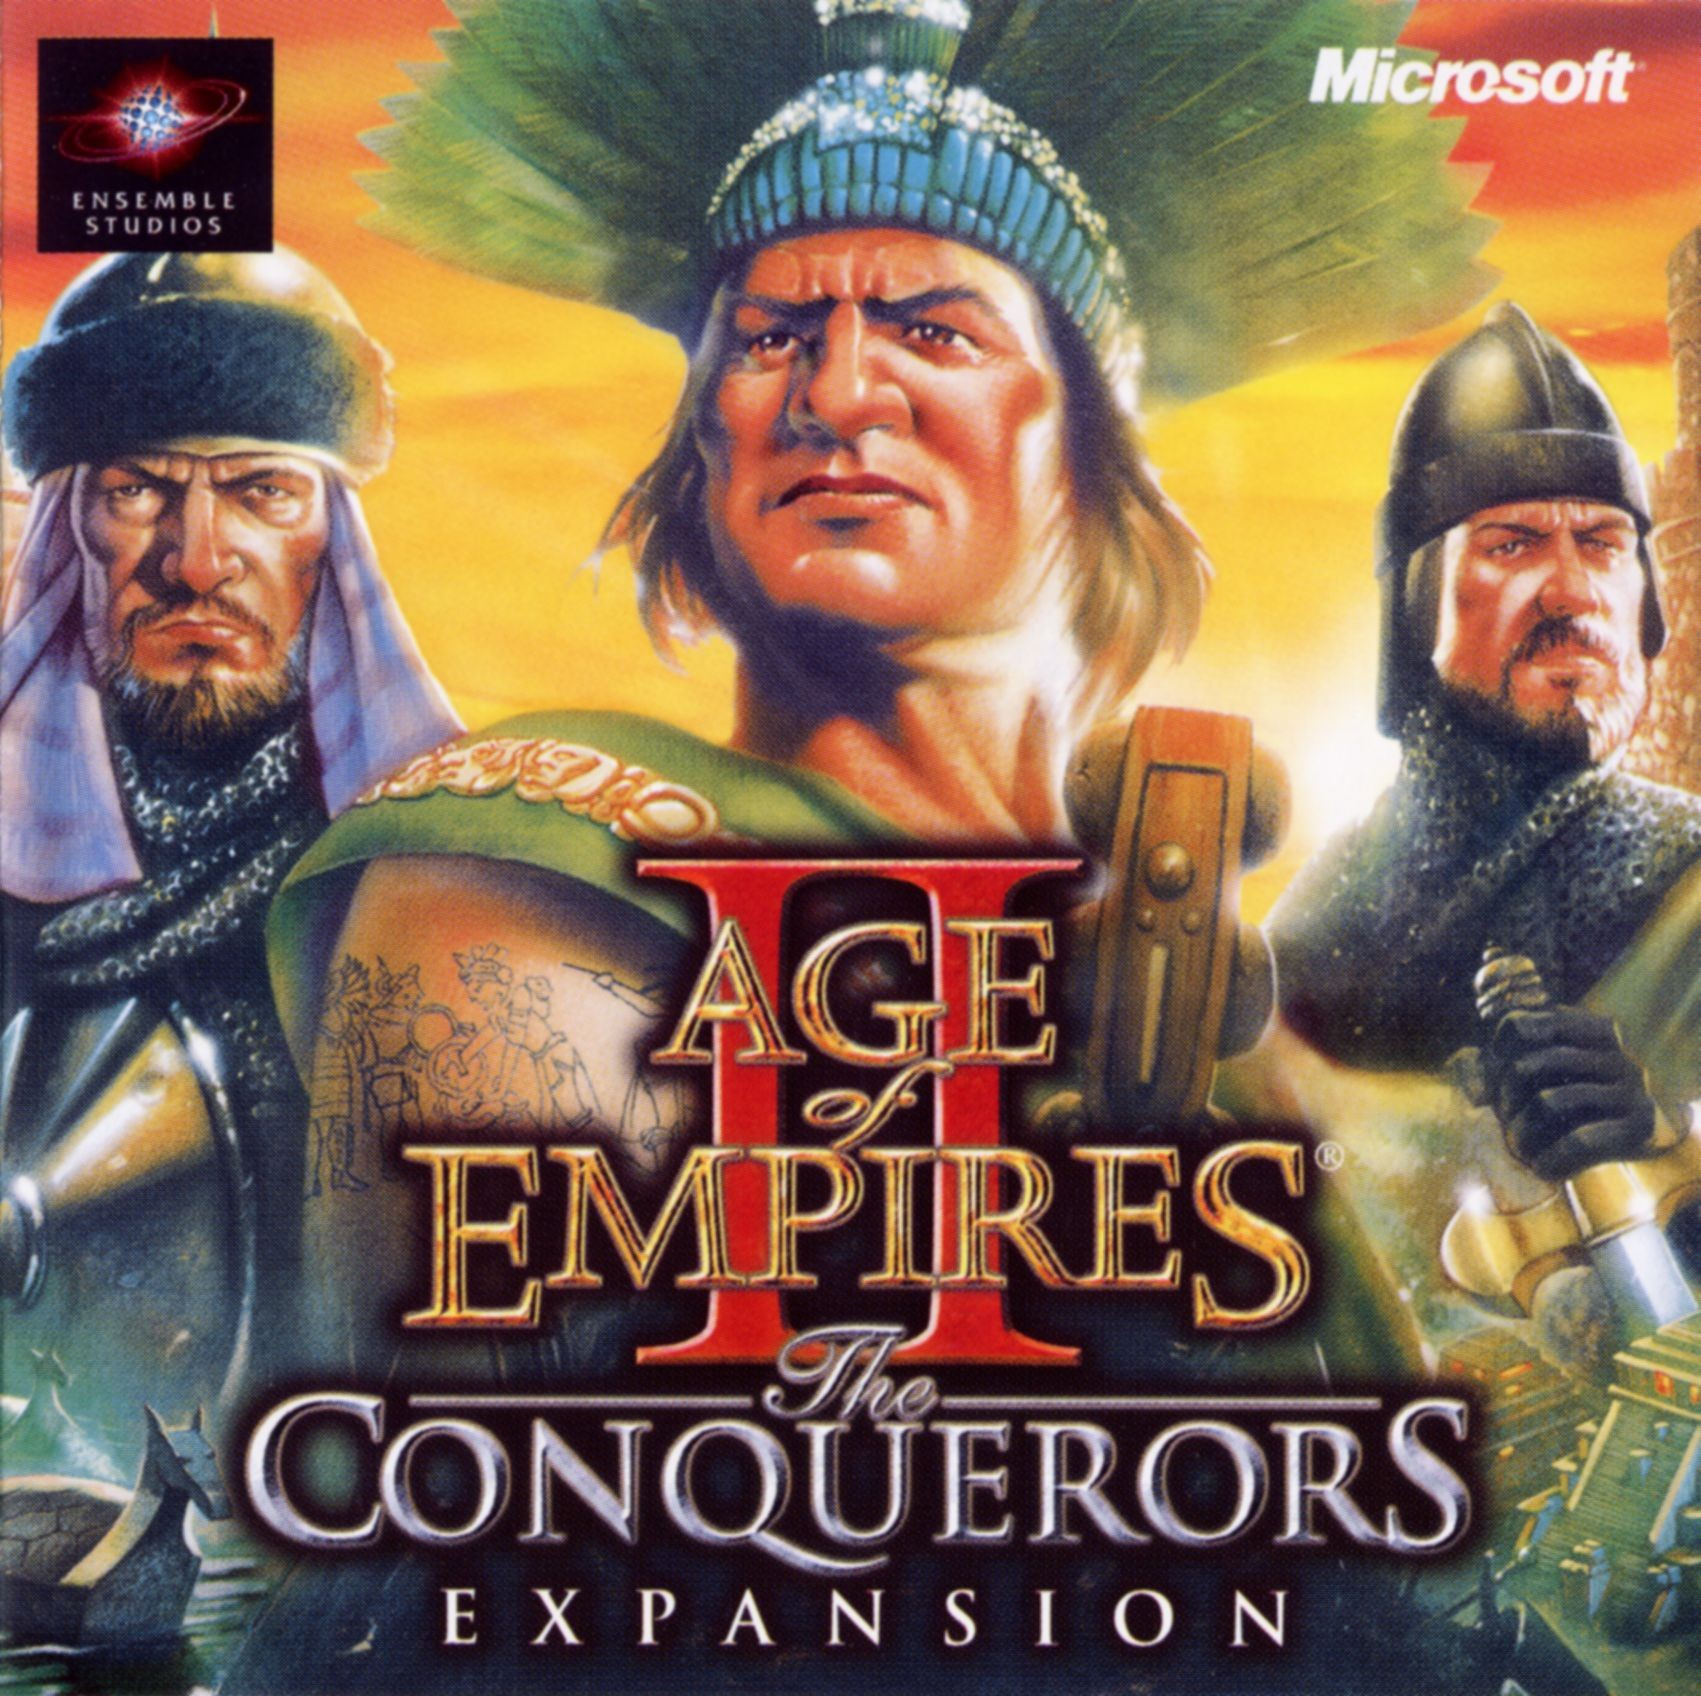 Age of Empires II: The Conquerors Expansion 帝国时代II:征服者